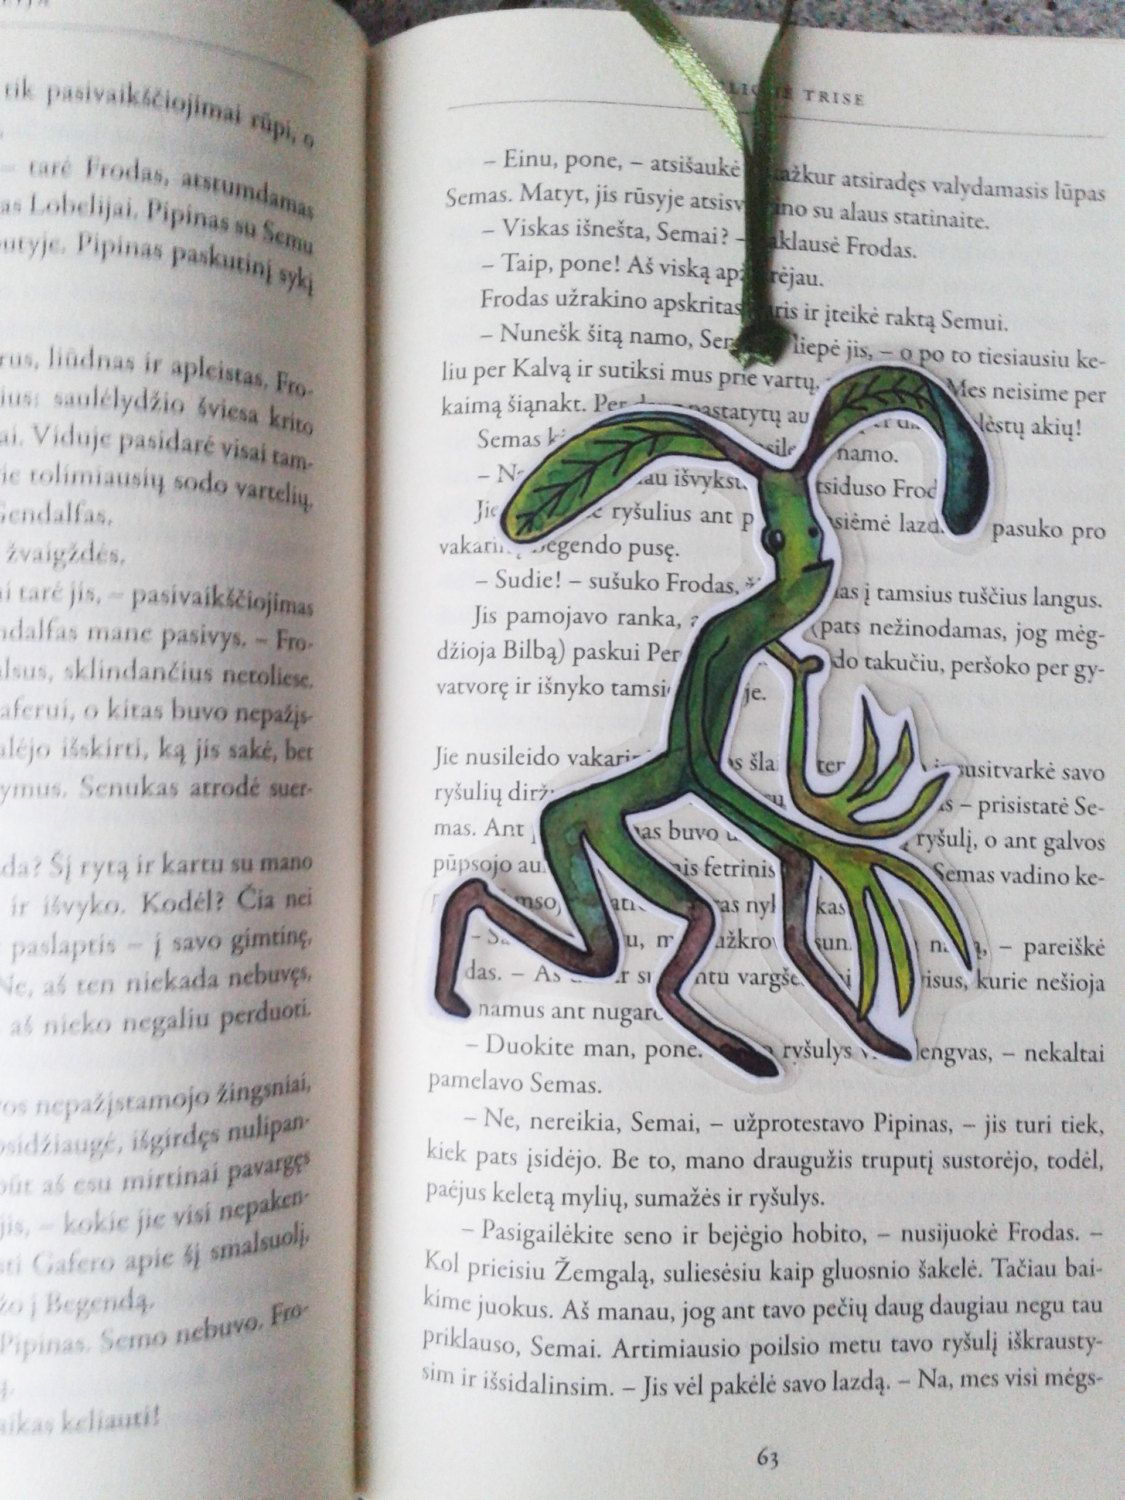 Excited to share the latest addition to my #etsy shop: Bowtruckle, Fantastic Beasts and where to find them http://etsy.me/2An5Sxp #booksandzines #bookmark #bowtruckle #fantasticbeasts #hp #harrypotter #cute #andwheretofindthem #christmas